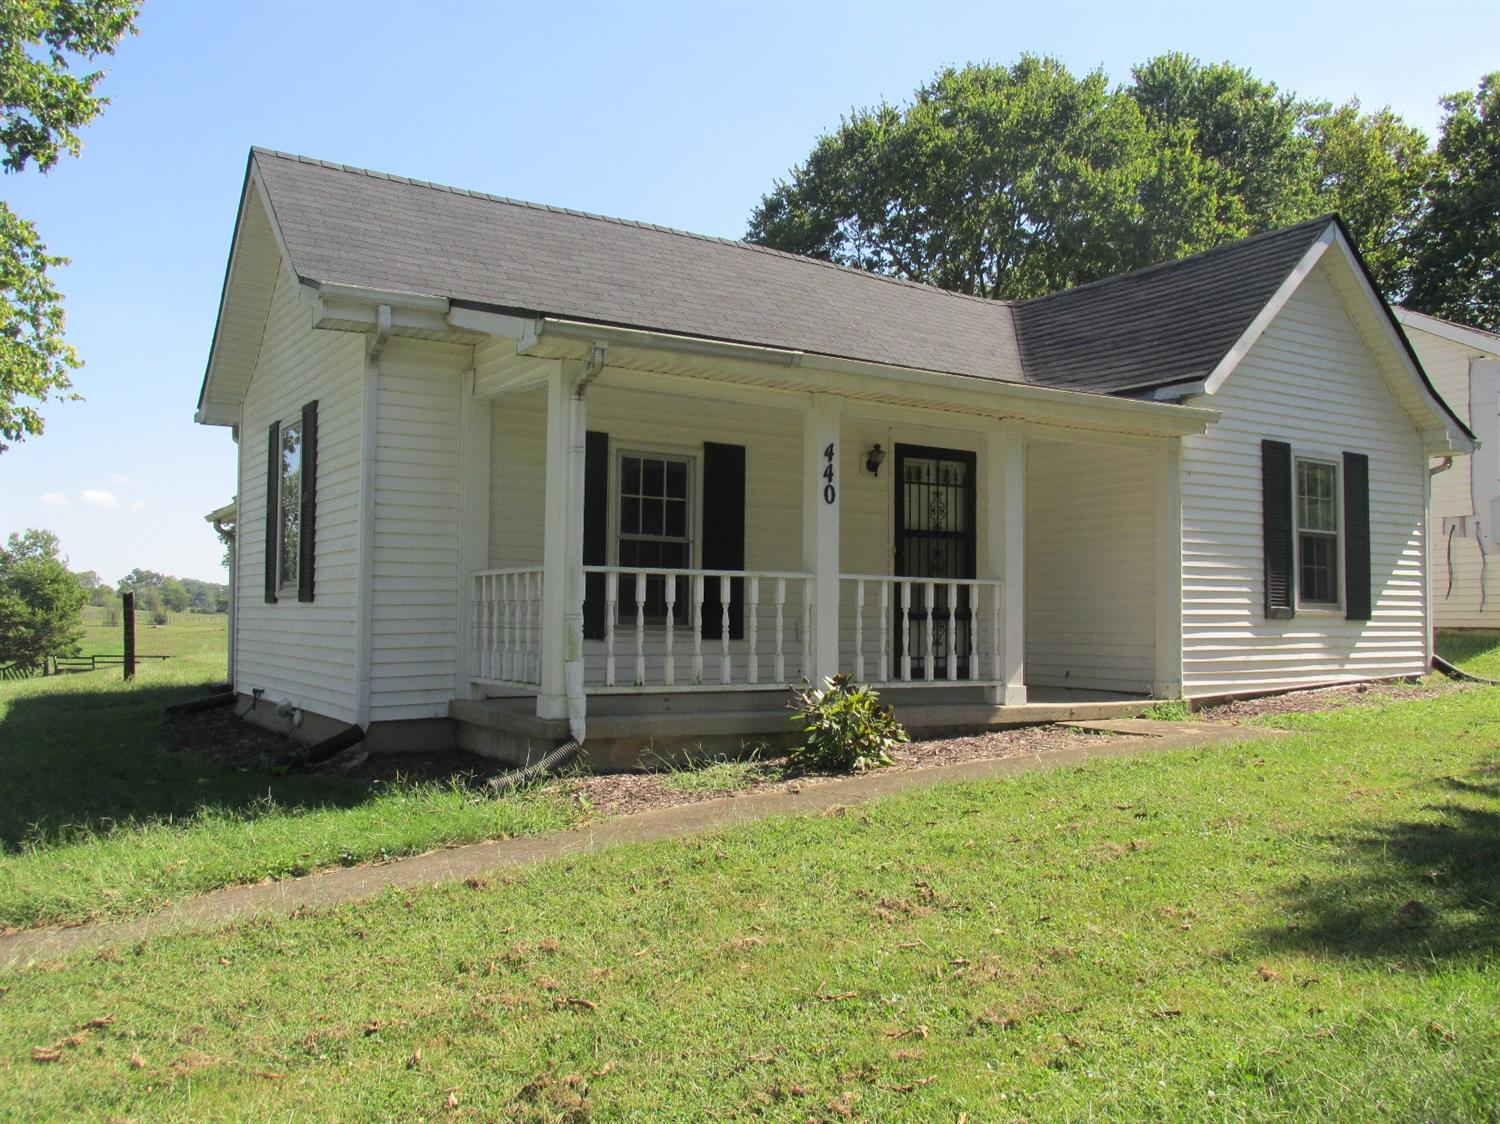 Located%20at%20corner%20of%20three%20counties-This%20property%20has%20a%20Lexington%20address%20but%20is%20in%20Scott%20County.%20One%20level%20country%20house%20has%20fairly%20new%20appliances%20and%20remodeled%20full%20bath,%20ceiling%20fans.%20Seller%20of%20this%20property%20has%20owned%20this%20proper%20only%20nearly%20a%20year%20but%20previous%20seller%20added%20new%20$5,000%20Hvac,%20new%20interior%20doors%20&%20paint%20&%20appliances.%20The%20four%20car%20garage%20is%20a%20wonderful%20feature%20for%20a%20car%20collector%20-house%20is%20200%20amp/garage%20is%20100%20amp,%20garage%20has%20insulation%20plus%20insulated%20garage%20doors/florescent%20lights%20/storage%20area%20ect..,%20and%20there%20is%20another%20section%20of%20garage%2018x40%20for%20what%20ever%20new%20owner%20will%20desire(office/storage/small%20guest%20quarters,%20plus%20permeant%20stairs%20to%20floored%20attic%20above.%20Lovely%20land%20-%20the%20property%20is%20a%20half%20an%20acre%20with%20a%20creek%20and%20mature%20trees,%20sellar,%20gorgeous%20horse%20farm%20in%20rear%20of%20property%20with%20black%20fences.%20Shallow%20back-yard%20because%20this%20lot%20is%20longer%20than%20wider.%20The%20seller%20loves%20this%20great%20country%20setting%20but%20his%20family%20is%20blending%20with%20another%20family%20and%20now%20needs%20larger.